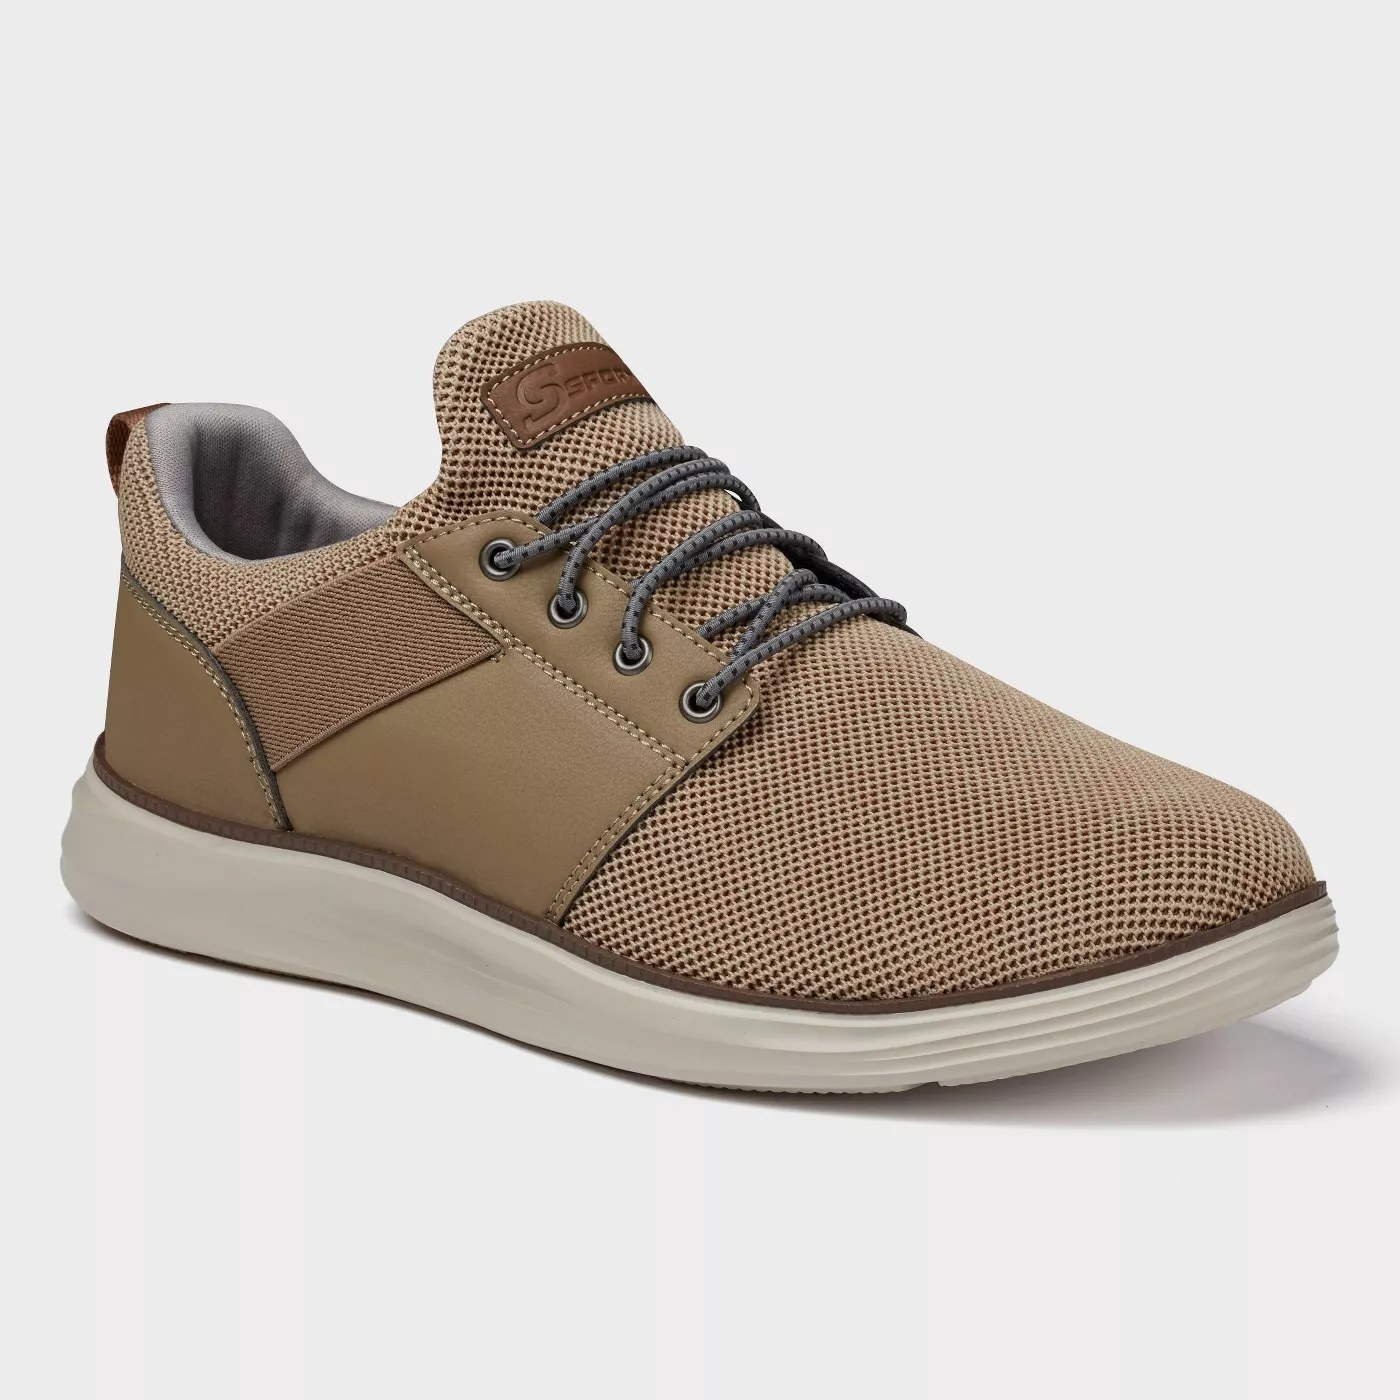 A taupe pair of sneakers with stretch laces